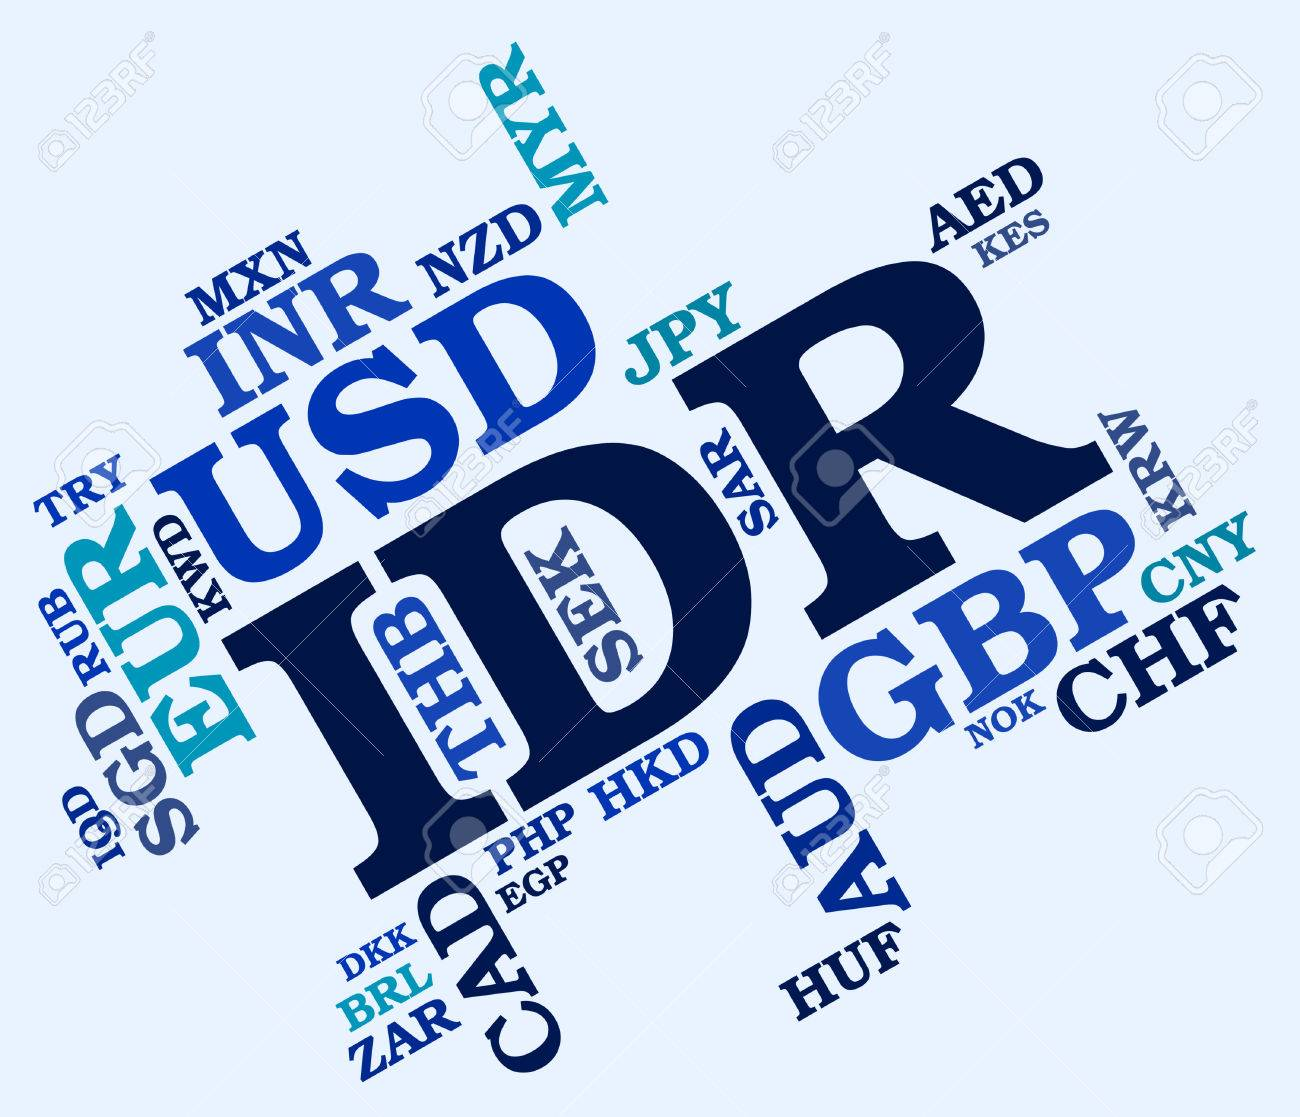 Idr currency representing exchange rate and rupiah stock photo idr currency representing exchange rate and rupiah stock photo 41878977 buycottarizona Images